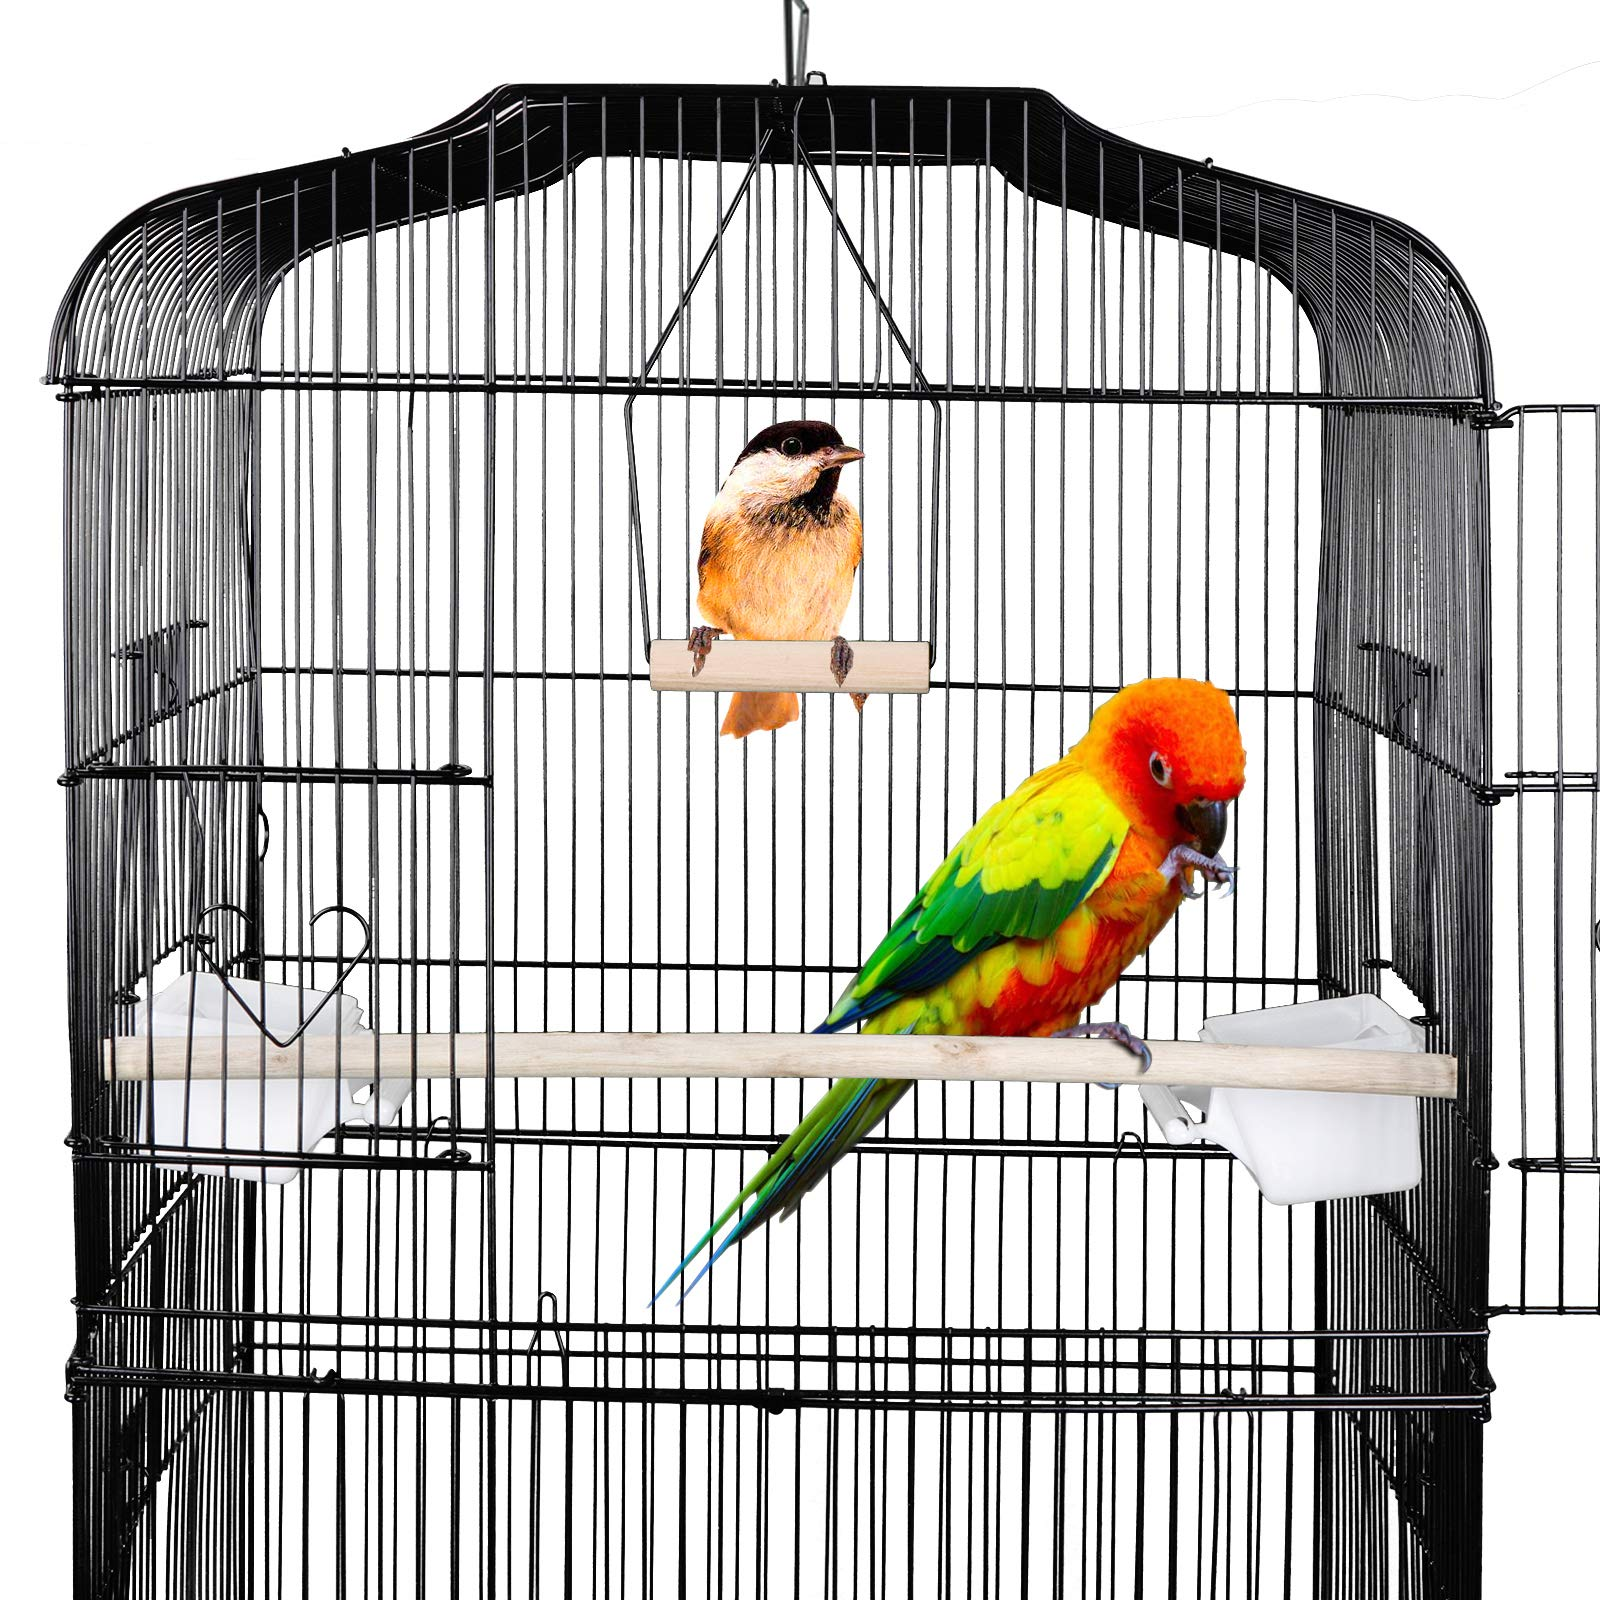 ZENY 59.3'' Bird Cage for Cockatiel Sun Conure Parakeet Finch Budgie Lovebird Canary Medium Pet Bird Cage with Rolling Stand by ZENY